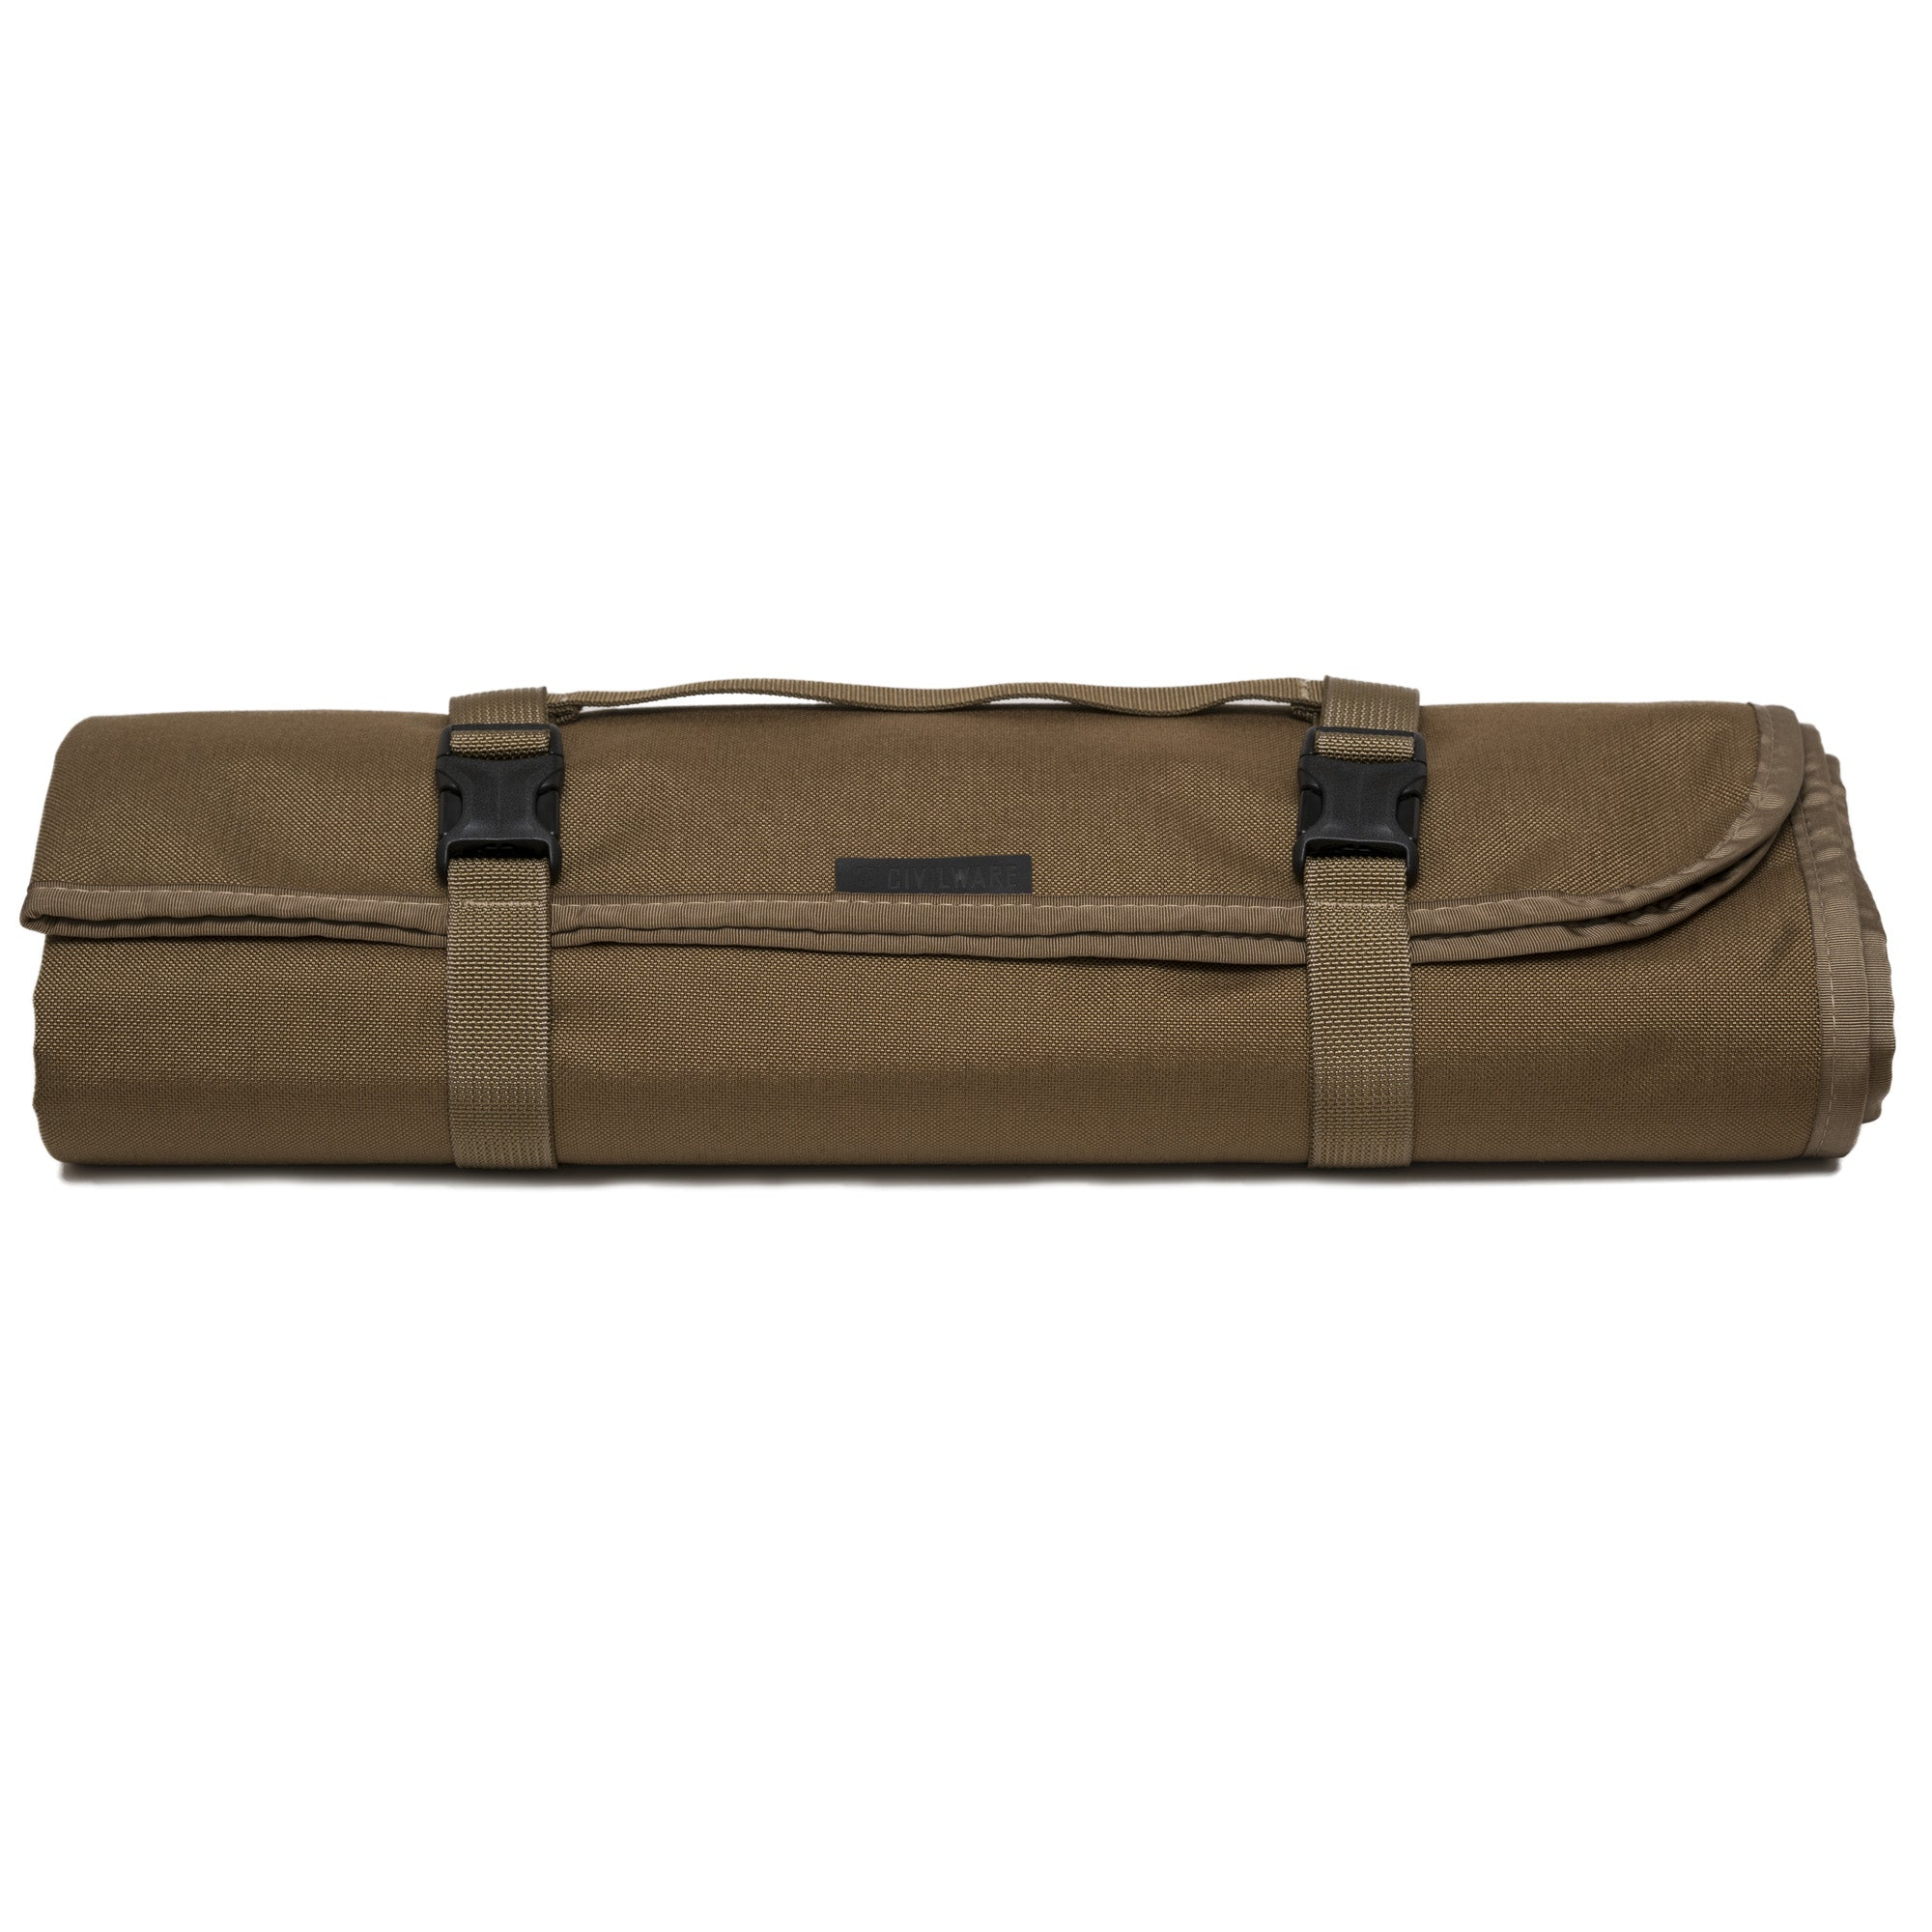 All Terrain Bedroll - Coyote Brown